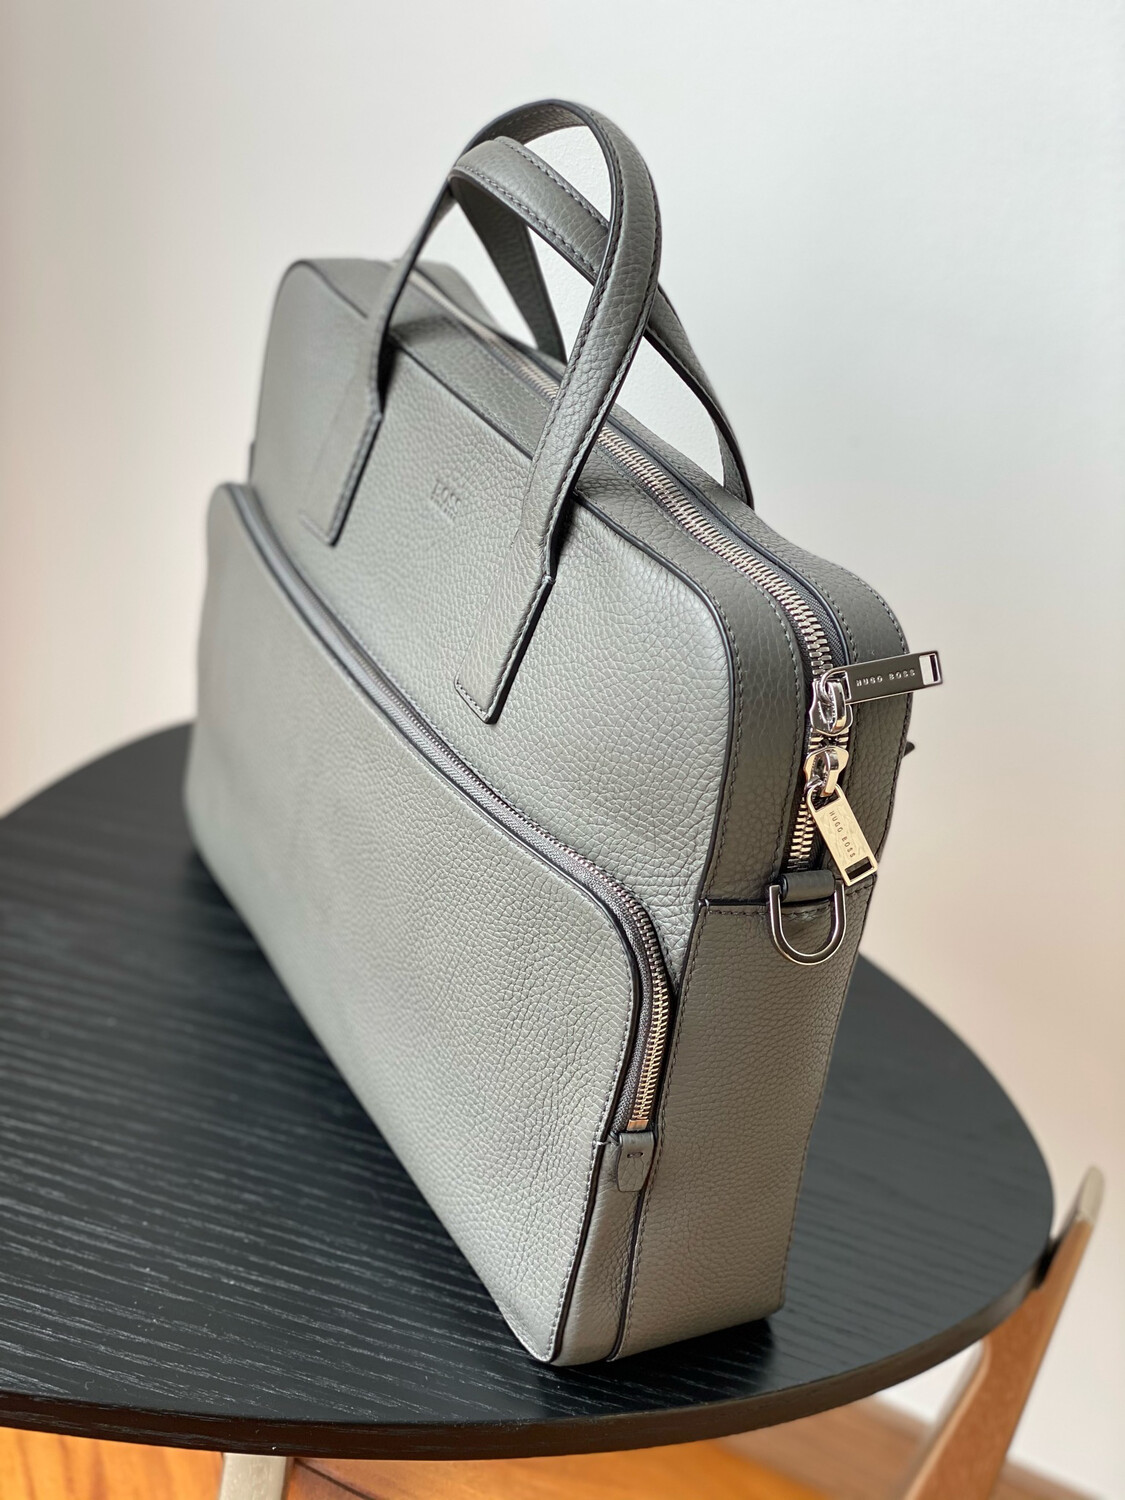 MALETÍN HUGO BOSS BRIEFCASE